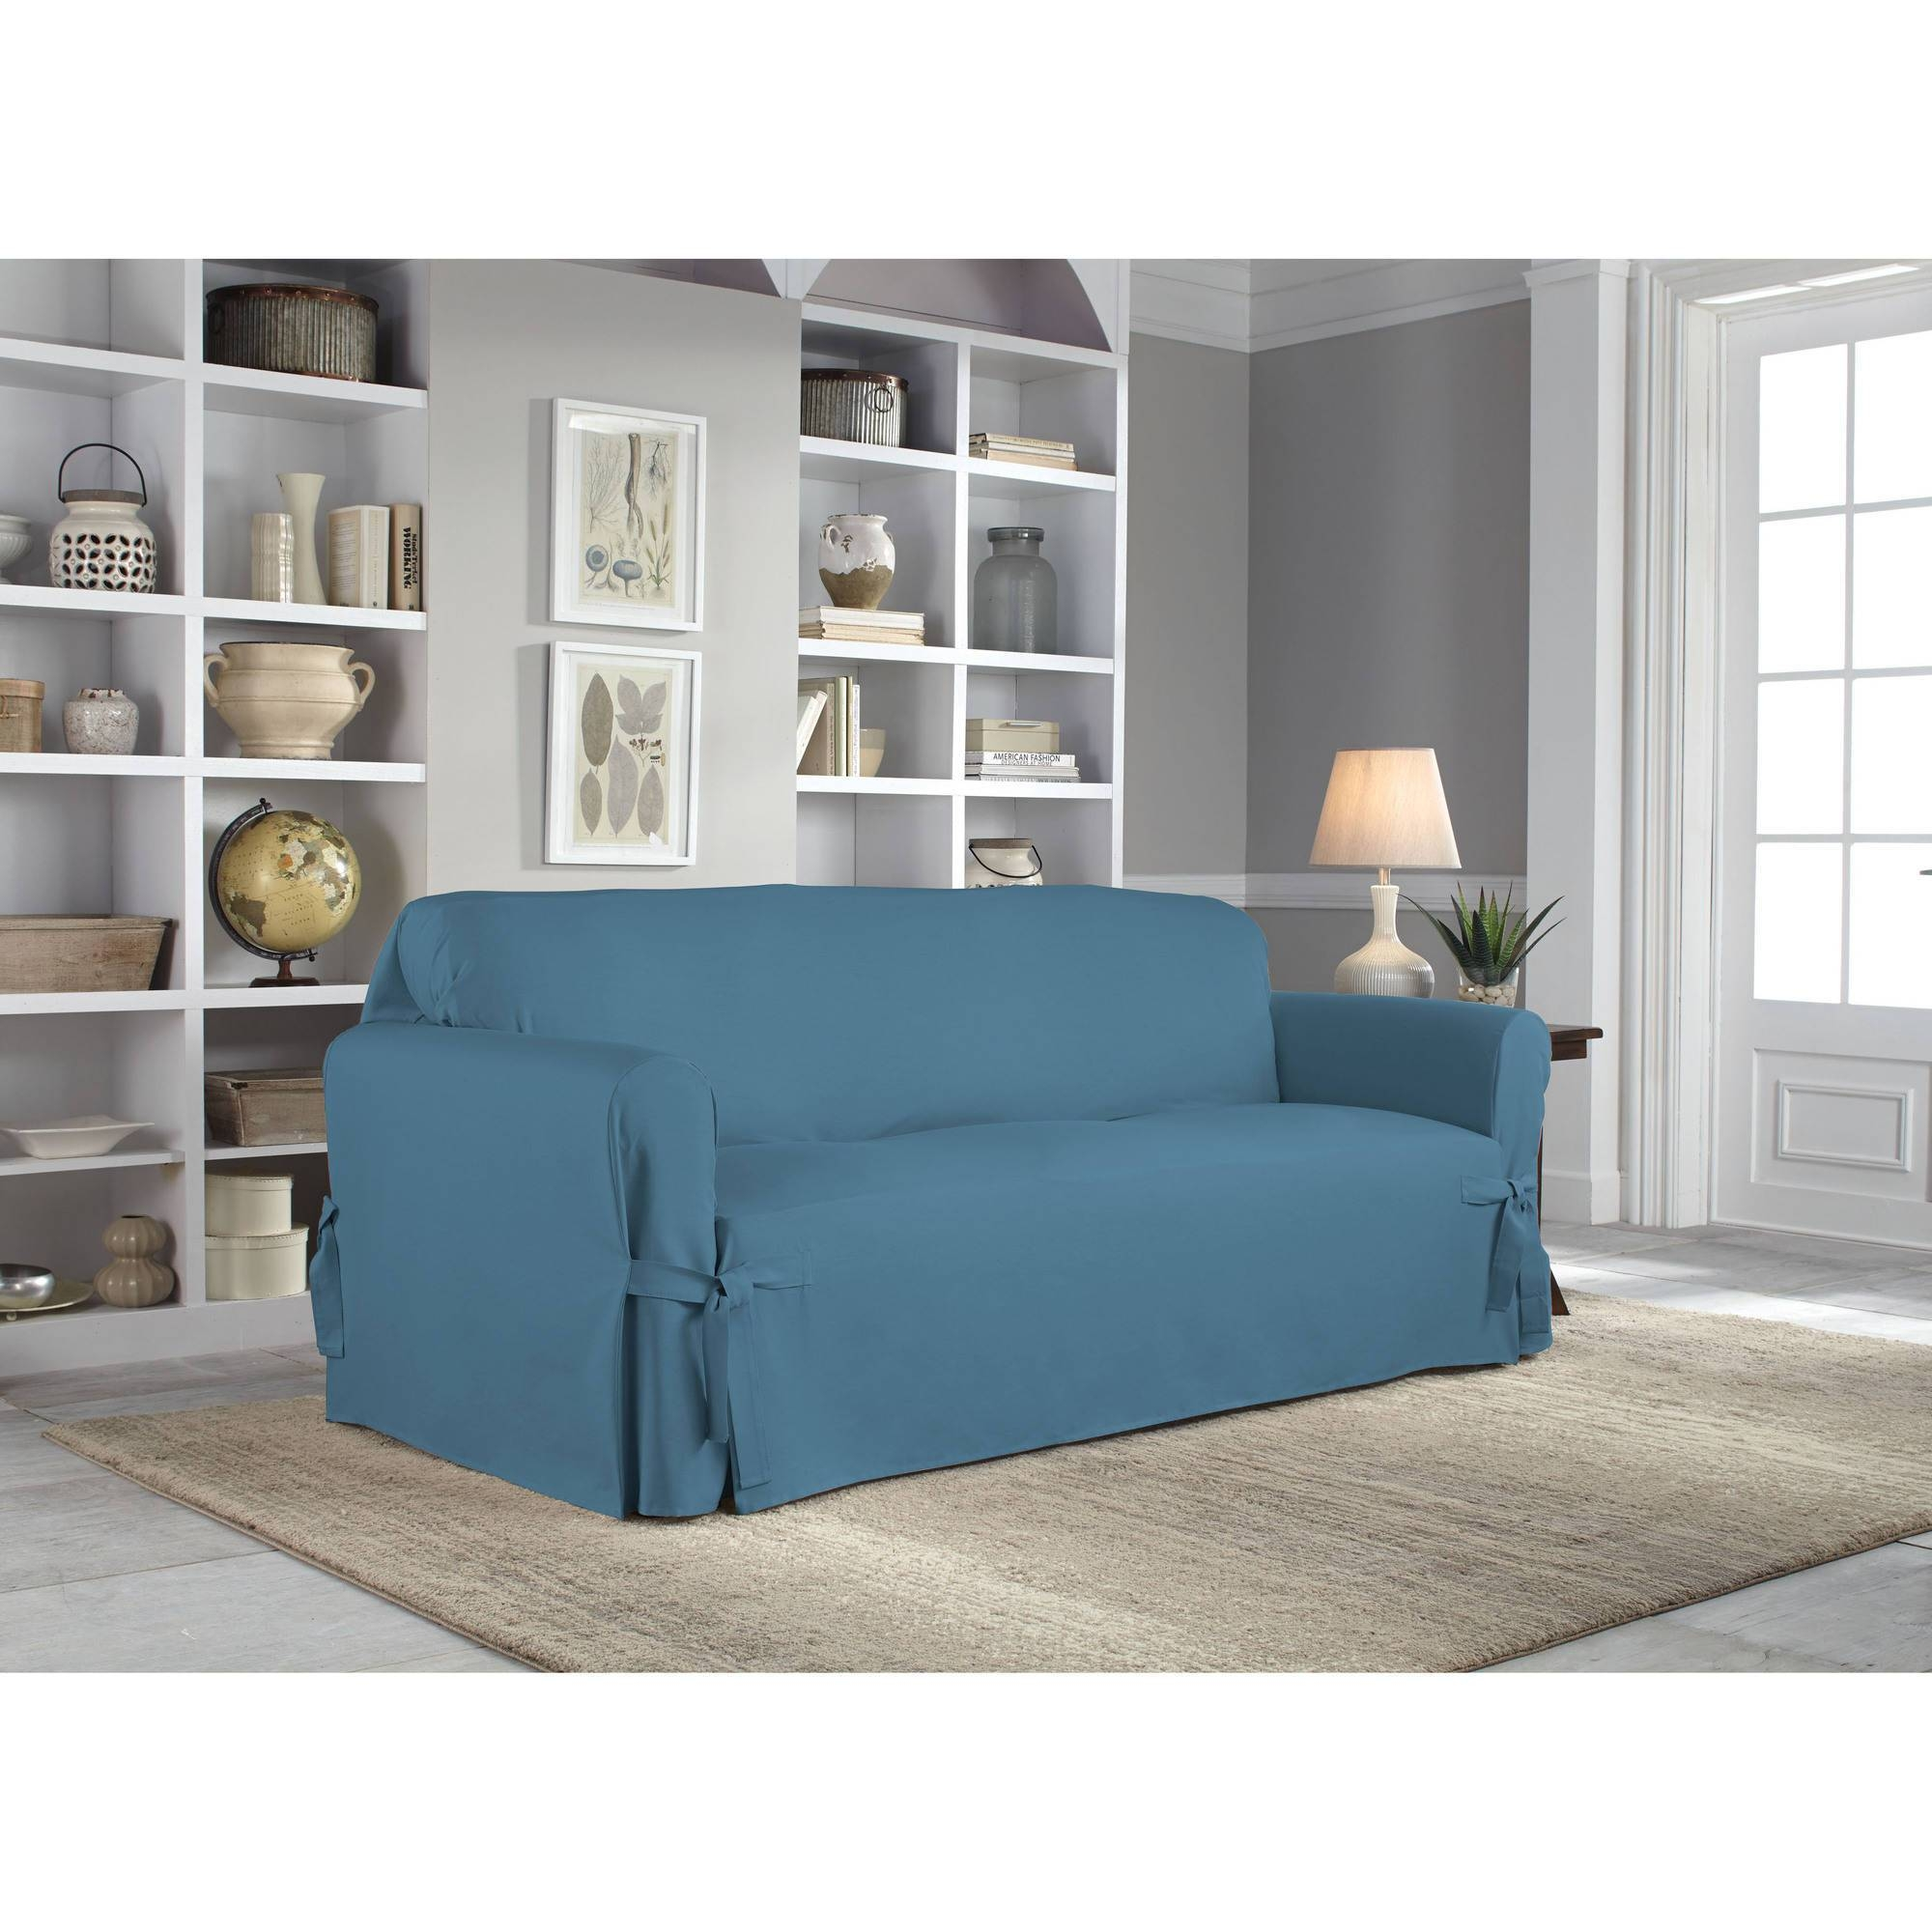 Serta Relaxed Fit Duck Furniture Slipcover, Sofa 1-Piece Box inside Teal Sofa Slipcovers (Image 25 of 30)